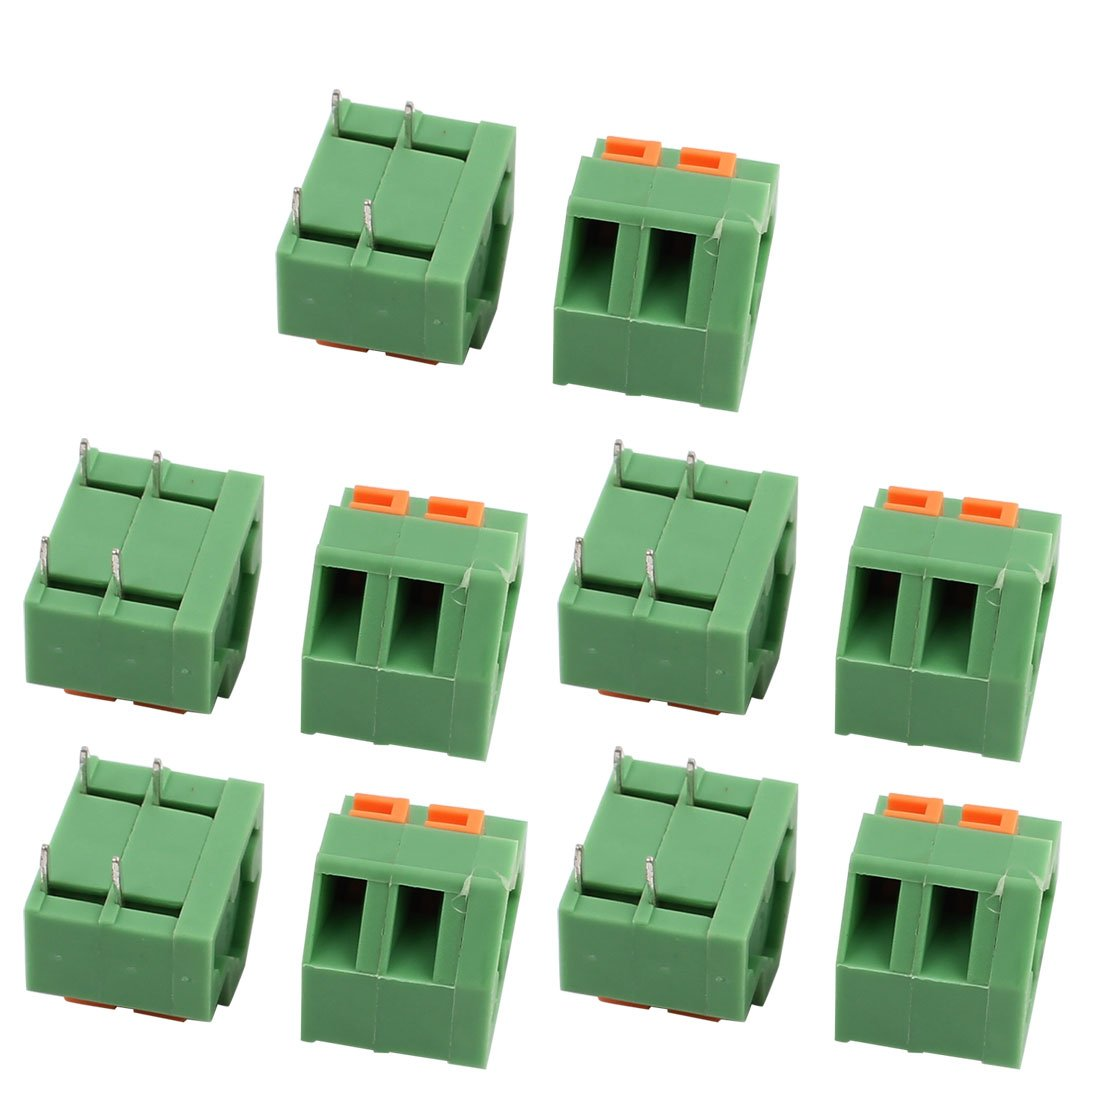 uxcell10pcs KF237 300V 10A 5.08mm Pitch 2P Spring Terminal Block for PCB Mounting